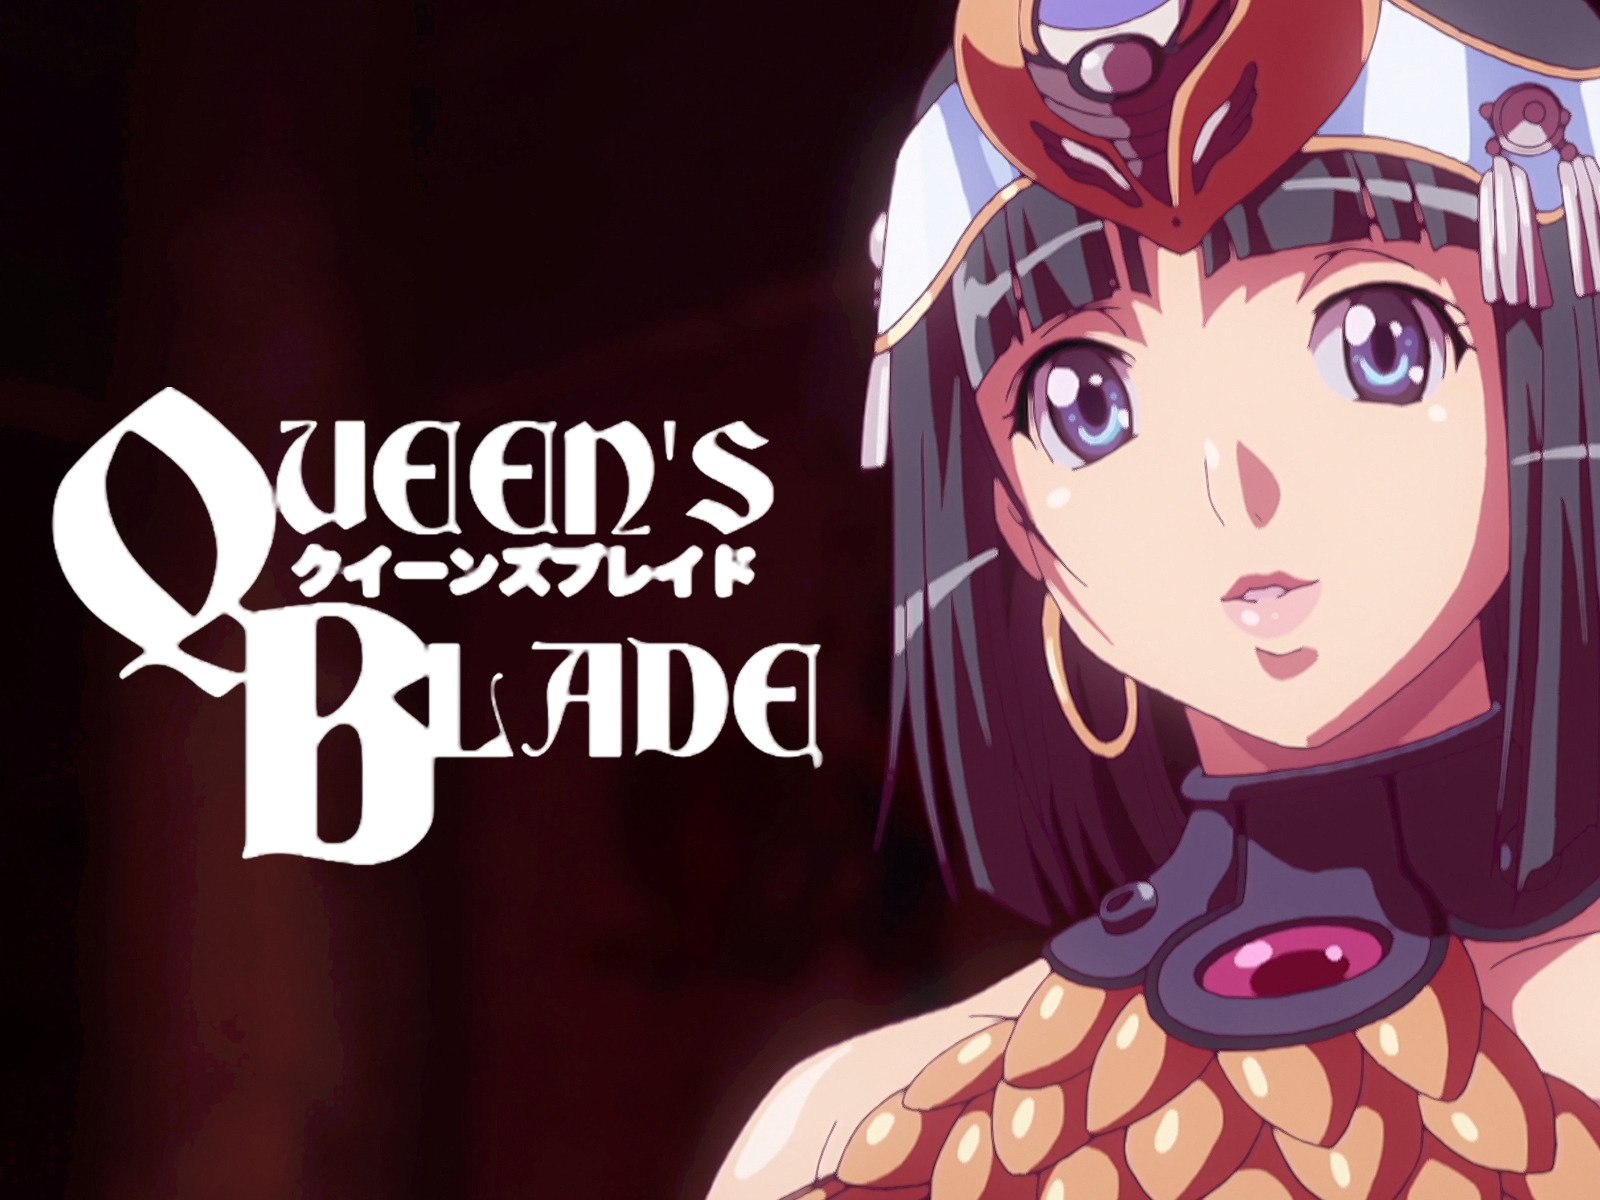 Amazon.com: Queens Blade: The Wandering Warrior - Season 1 ...